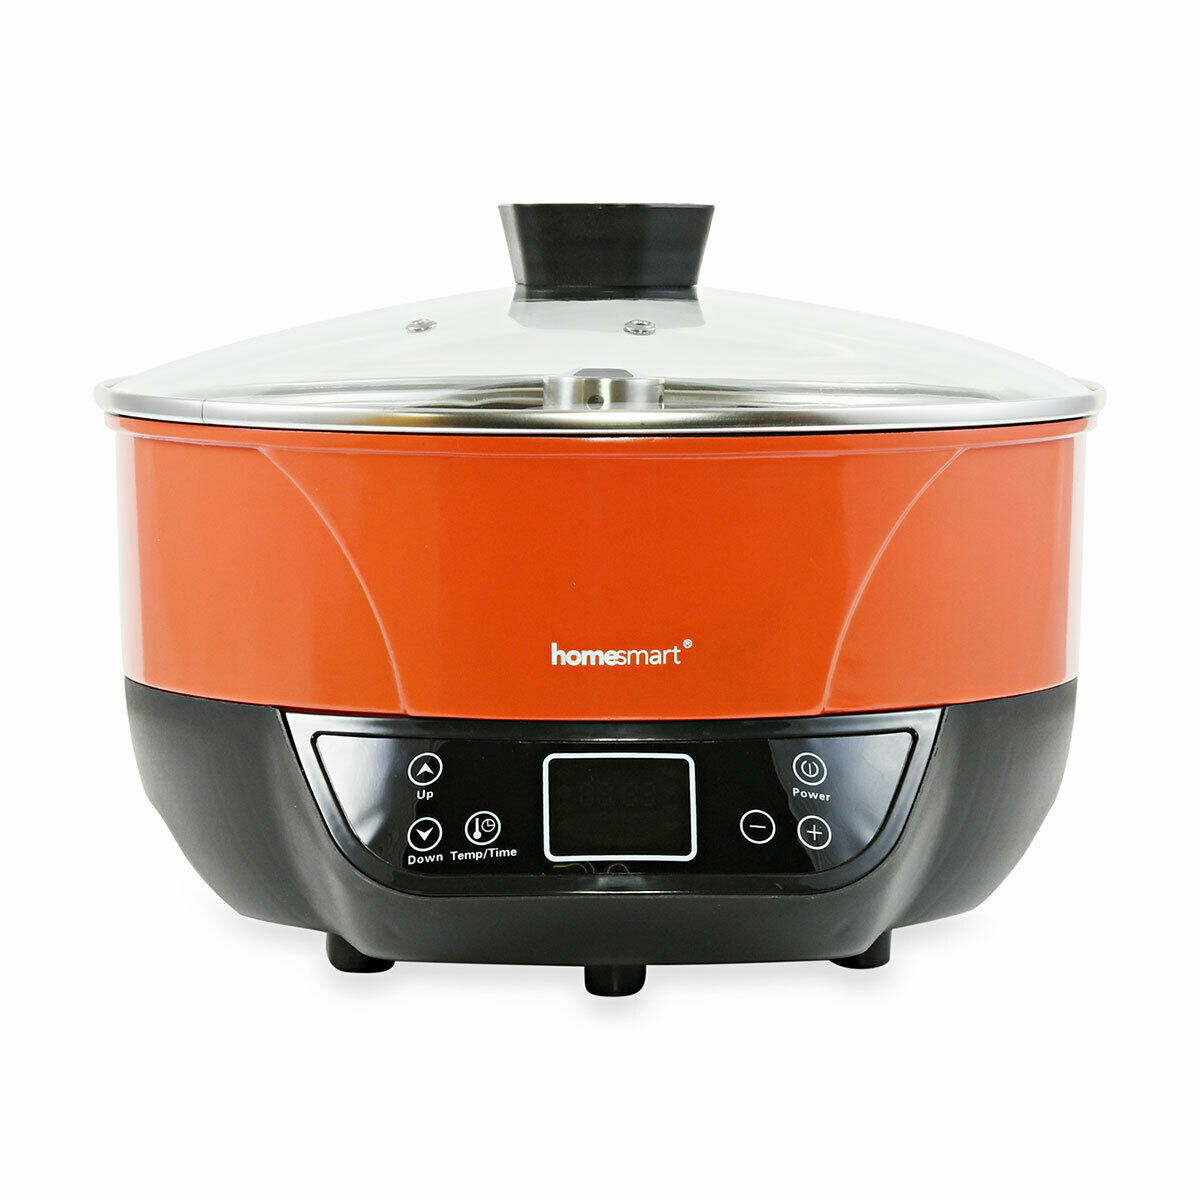 Homesmart Red Multi-function Automatic Lifting Hot Pot